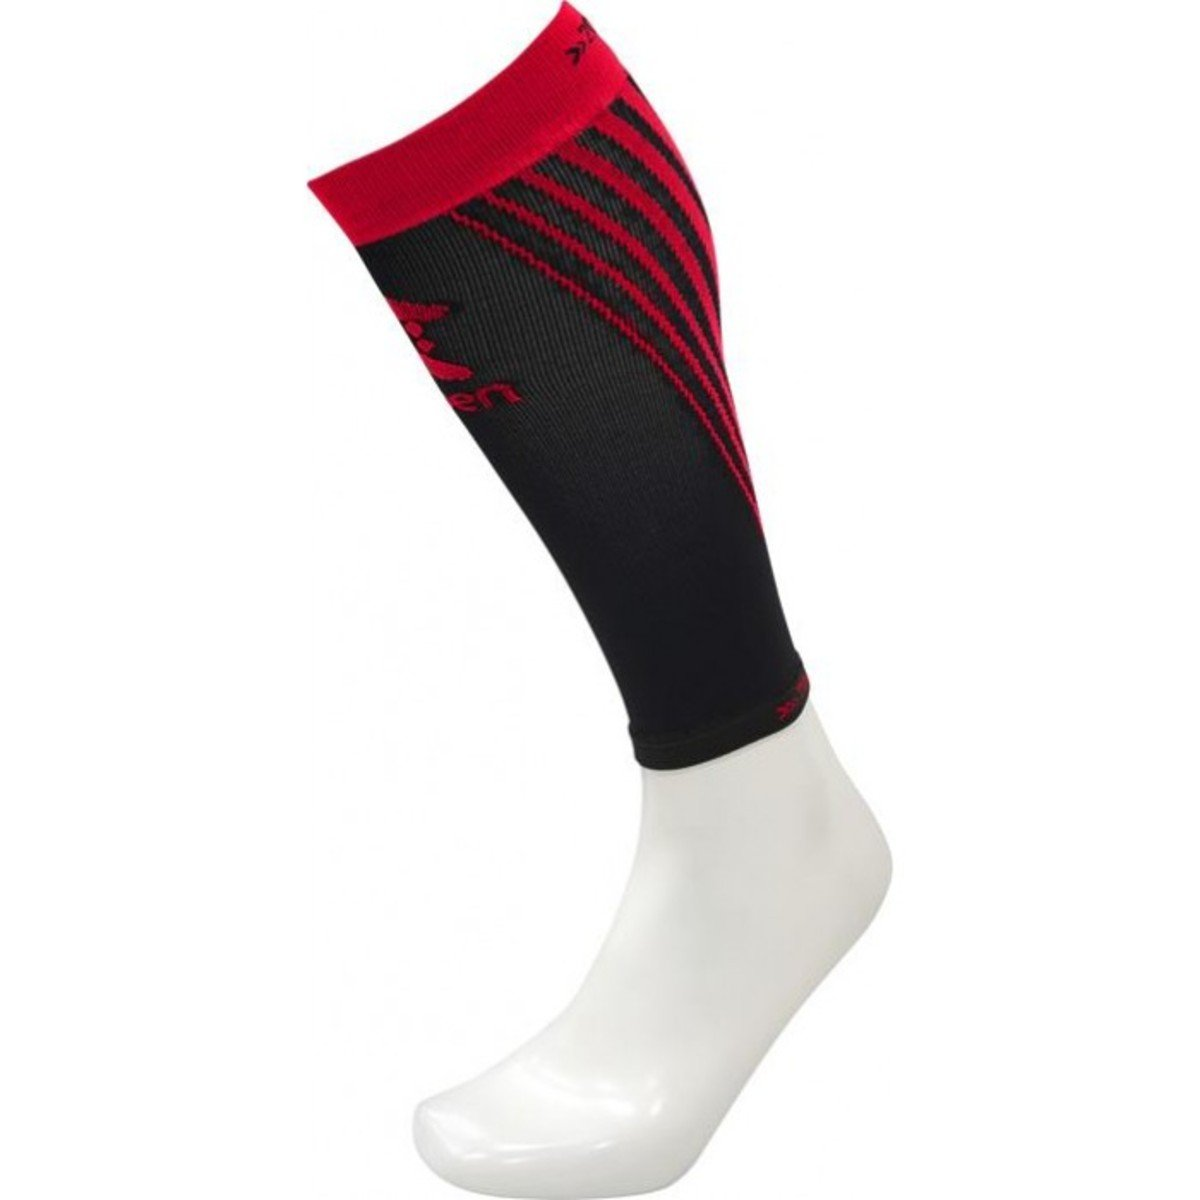 西班牙跑步壓力腳套 Men's Compression Calf Sleeve, Black/Red M